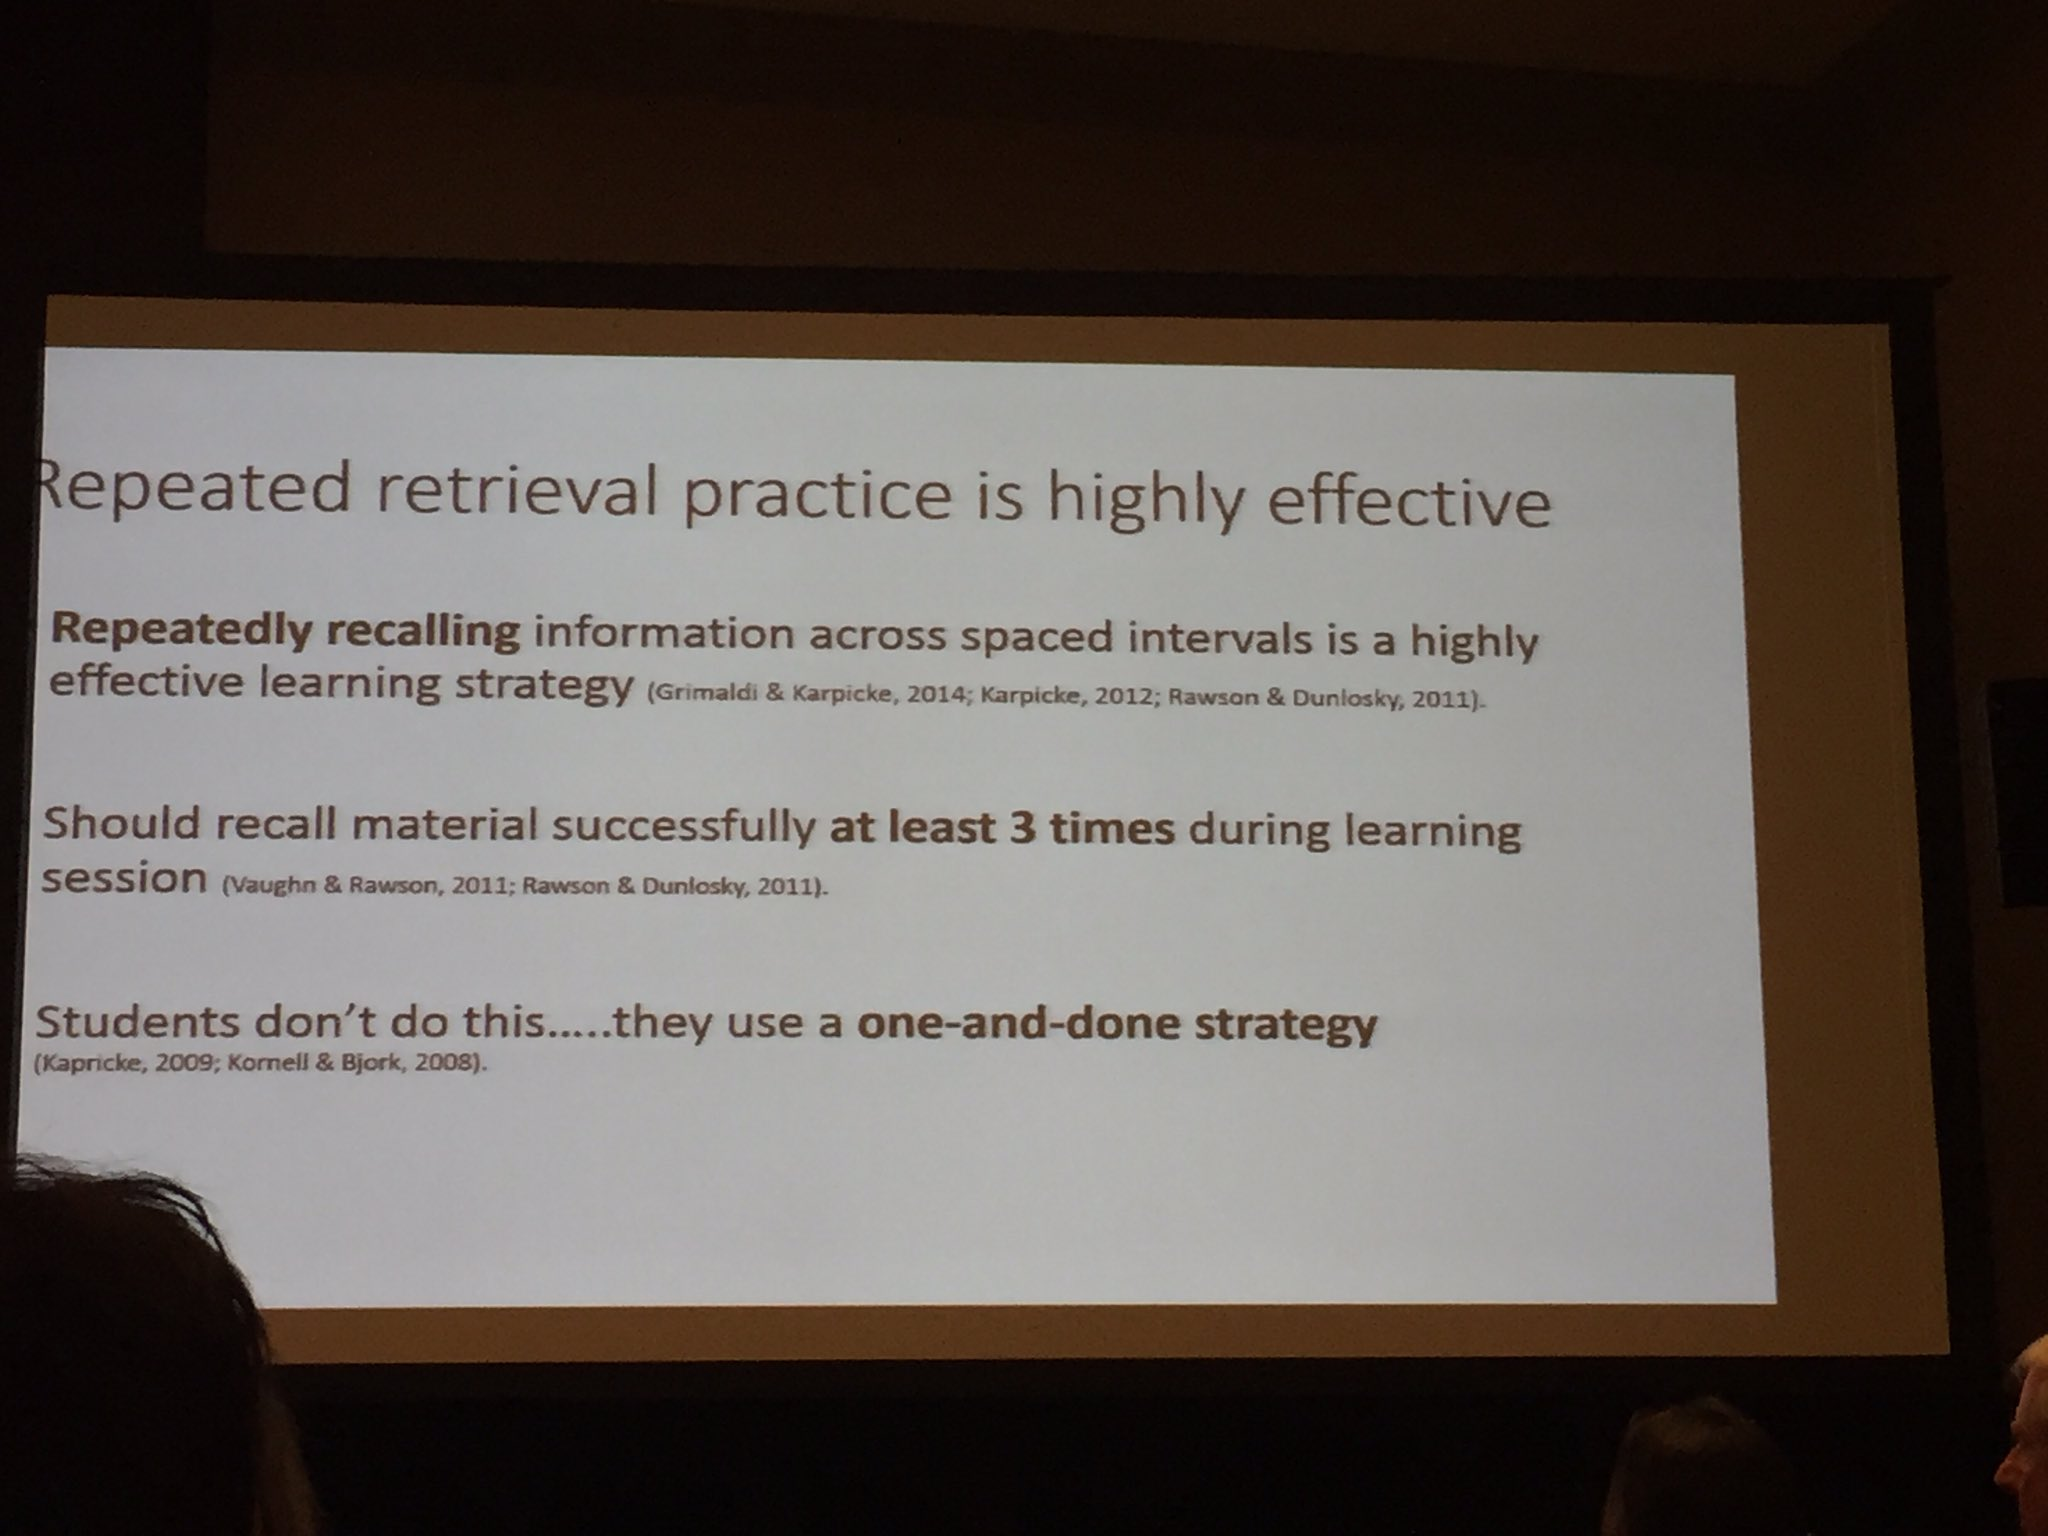 """Students use a """"one-and-done"""" strategy, which is not optimally effective. #psynom16 https://t.co/mnOXCwshnW"""